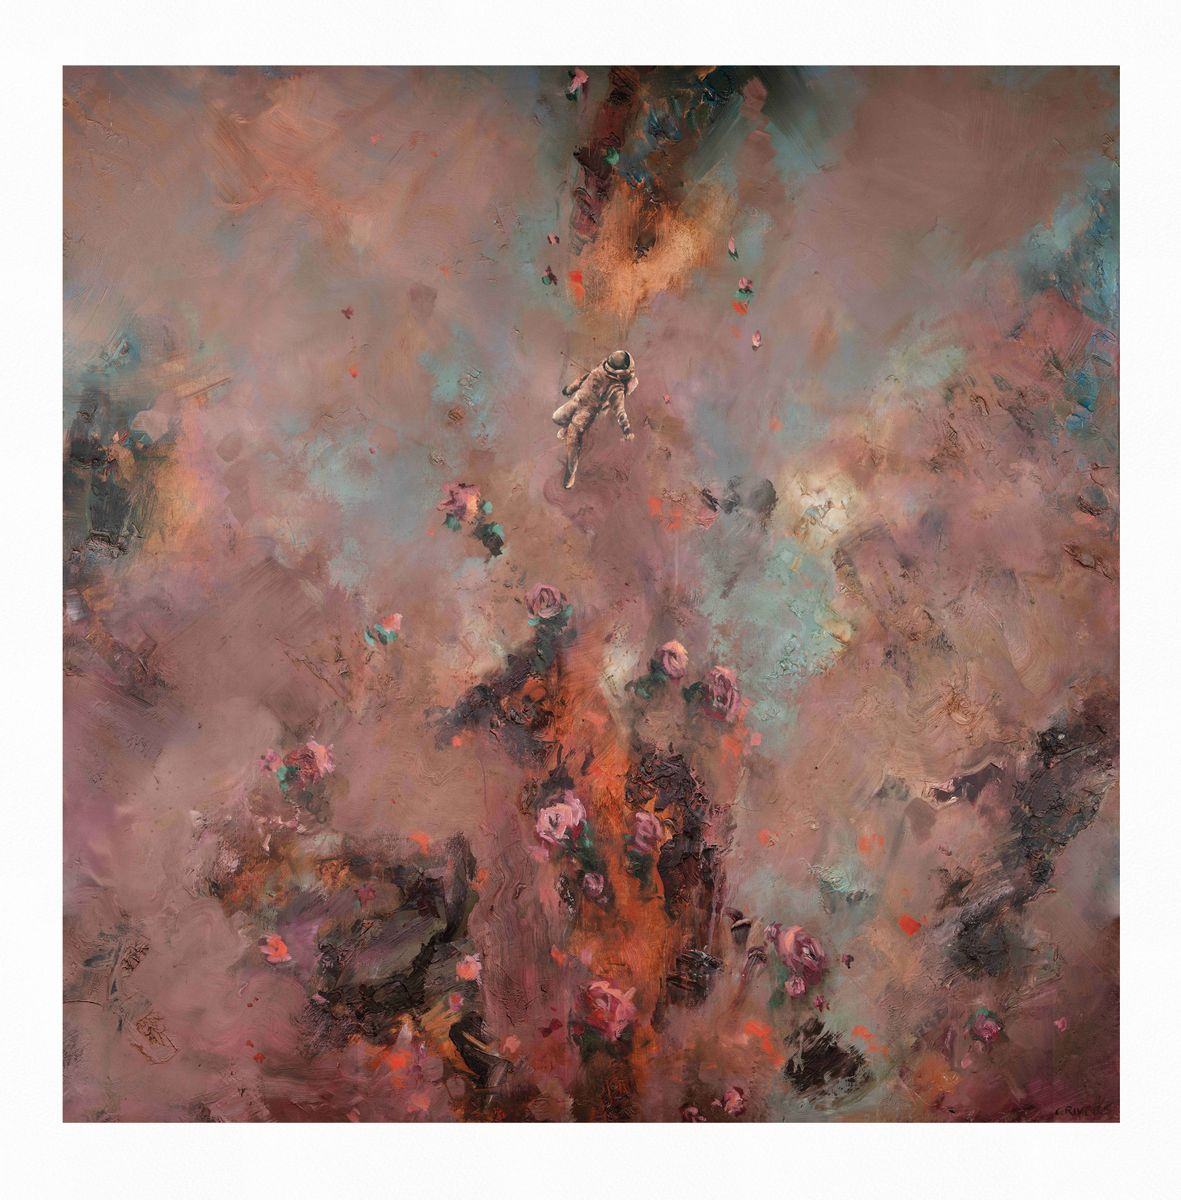 Chris Rivers | Planets | 2020 | Limited Edition Print on Canson Arches Aquarelle Rag | 90 x 90 cm | Edition of 75